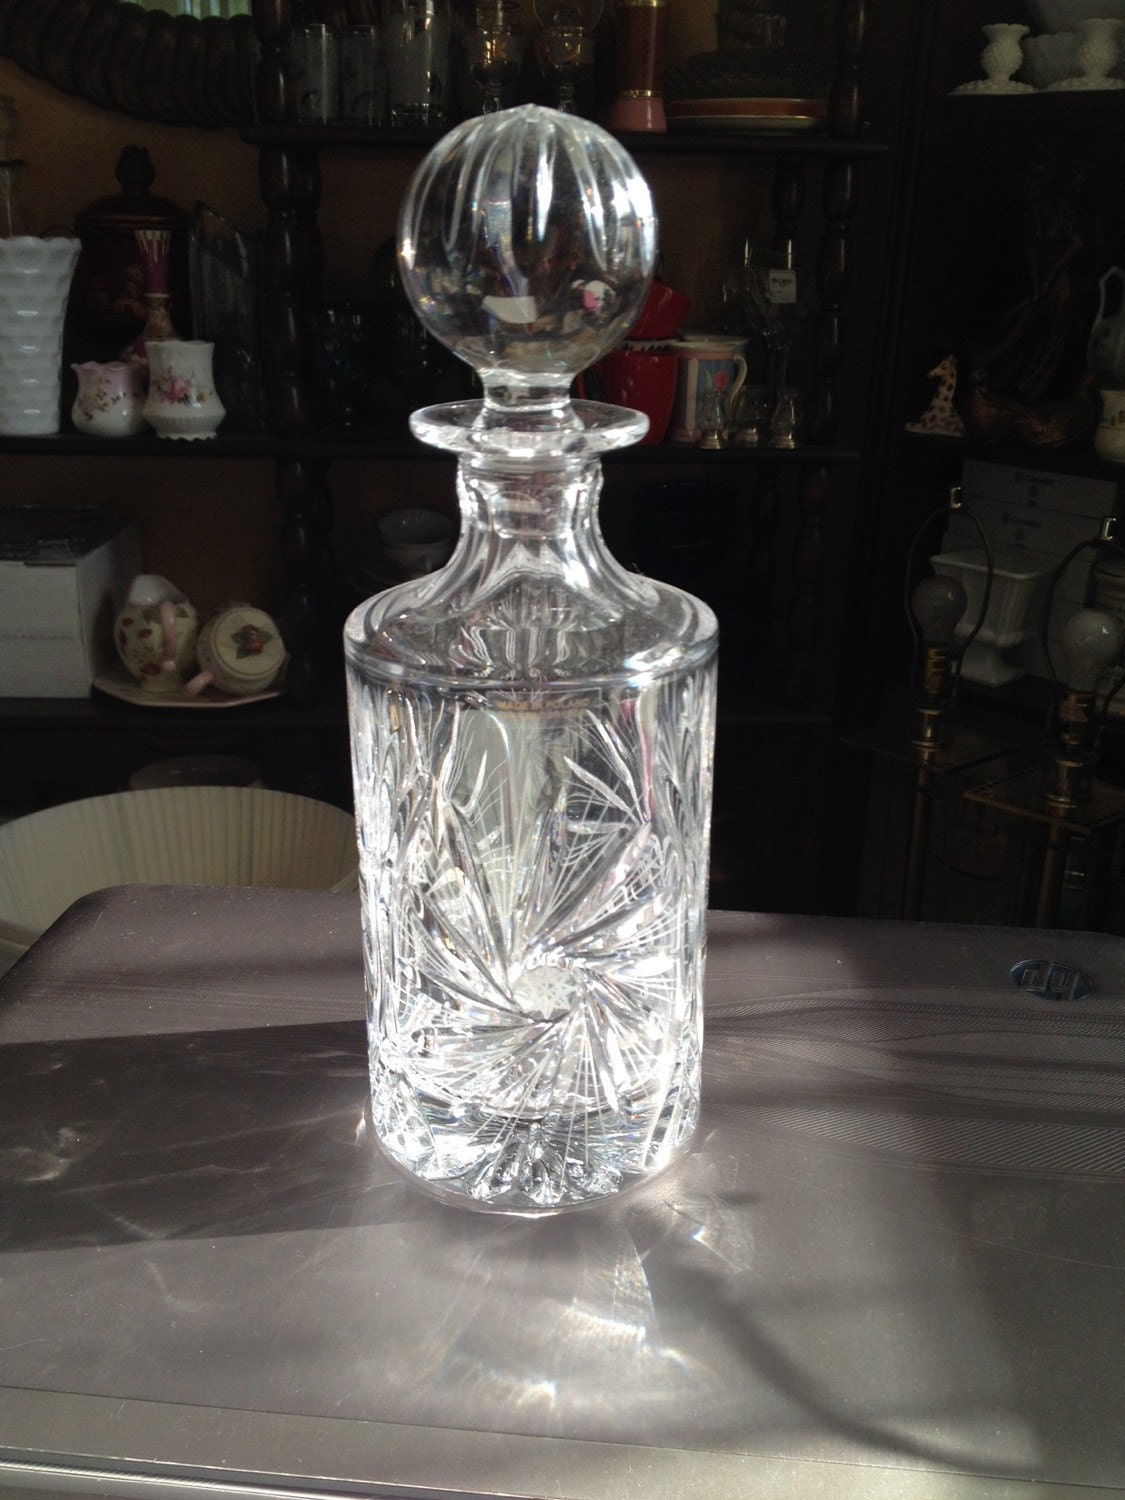 Irena 24% Lead Crystal Wind Decanter Made in Poland